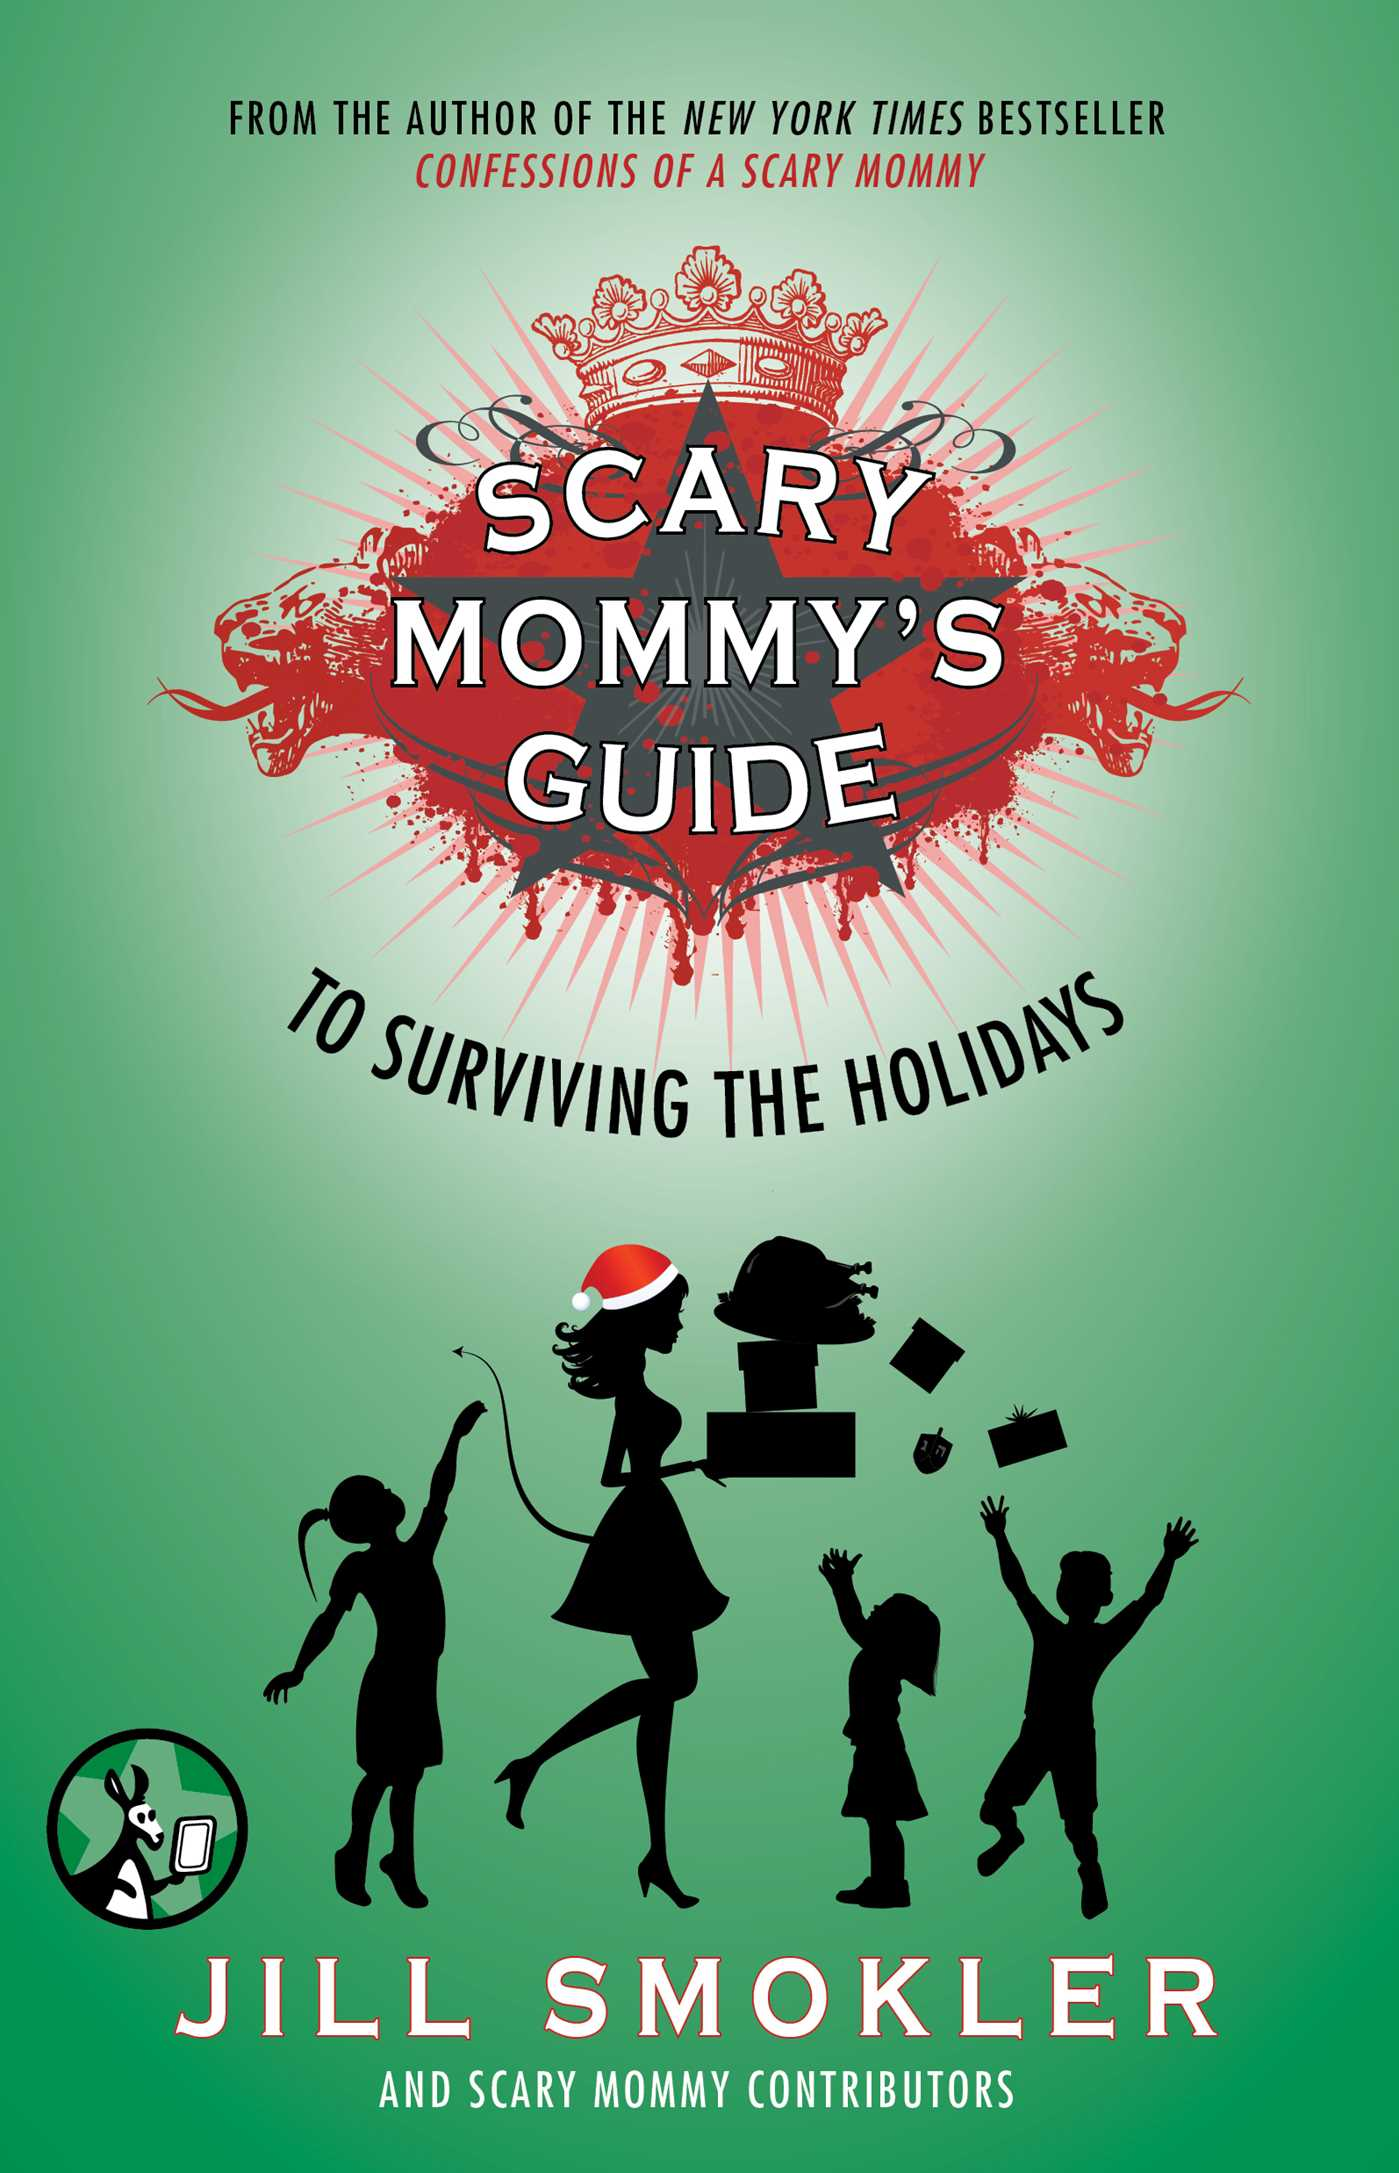 Scary mommys guide to surviving the holidays 9781501107429 hr